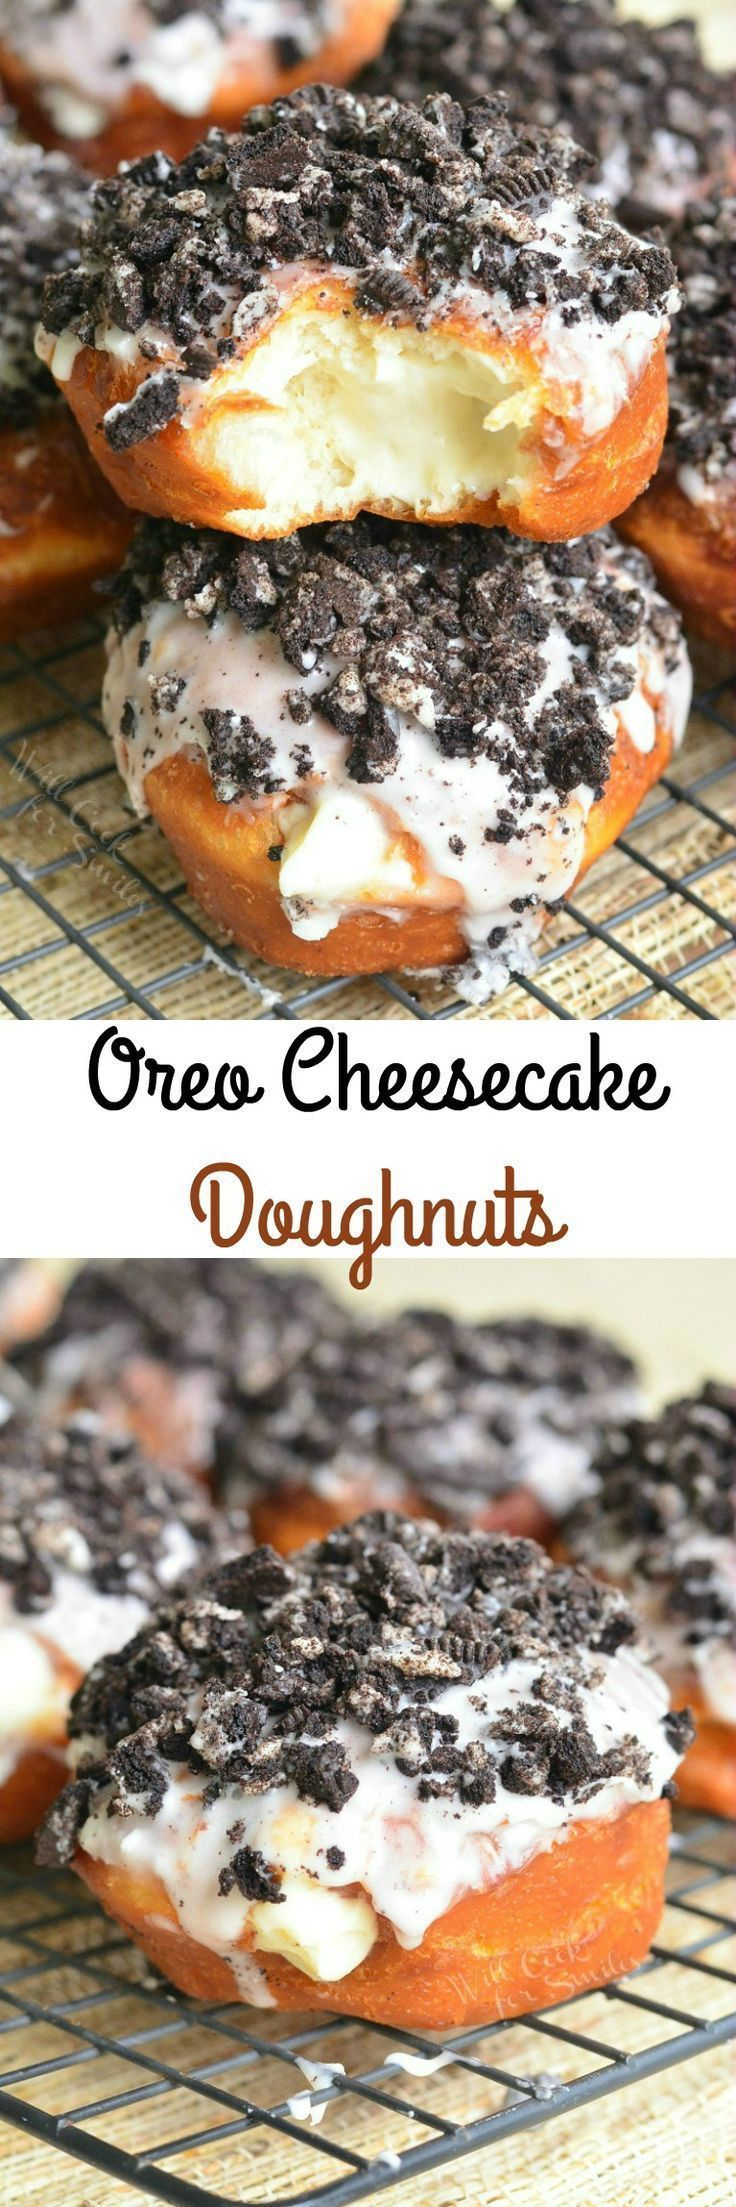 Cheesecake Doughnuts. Easy doughnuts stuffed with cheesecake mixture and topped with sweet glaze and crushed Oreo cookies.